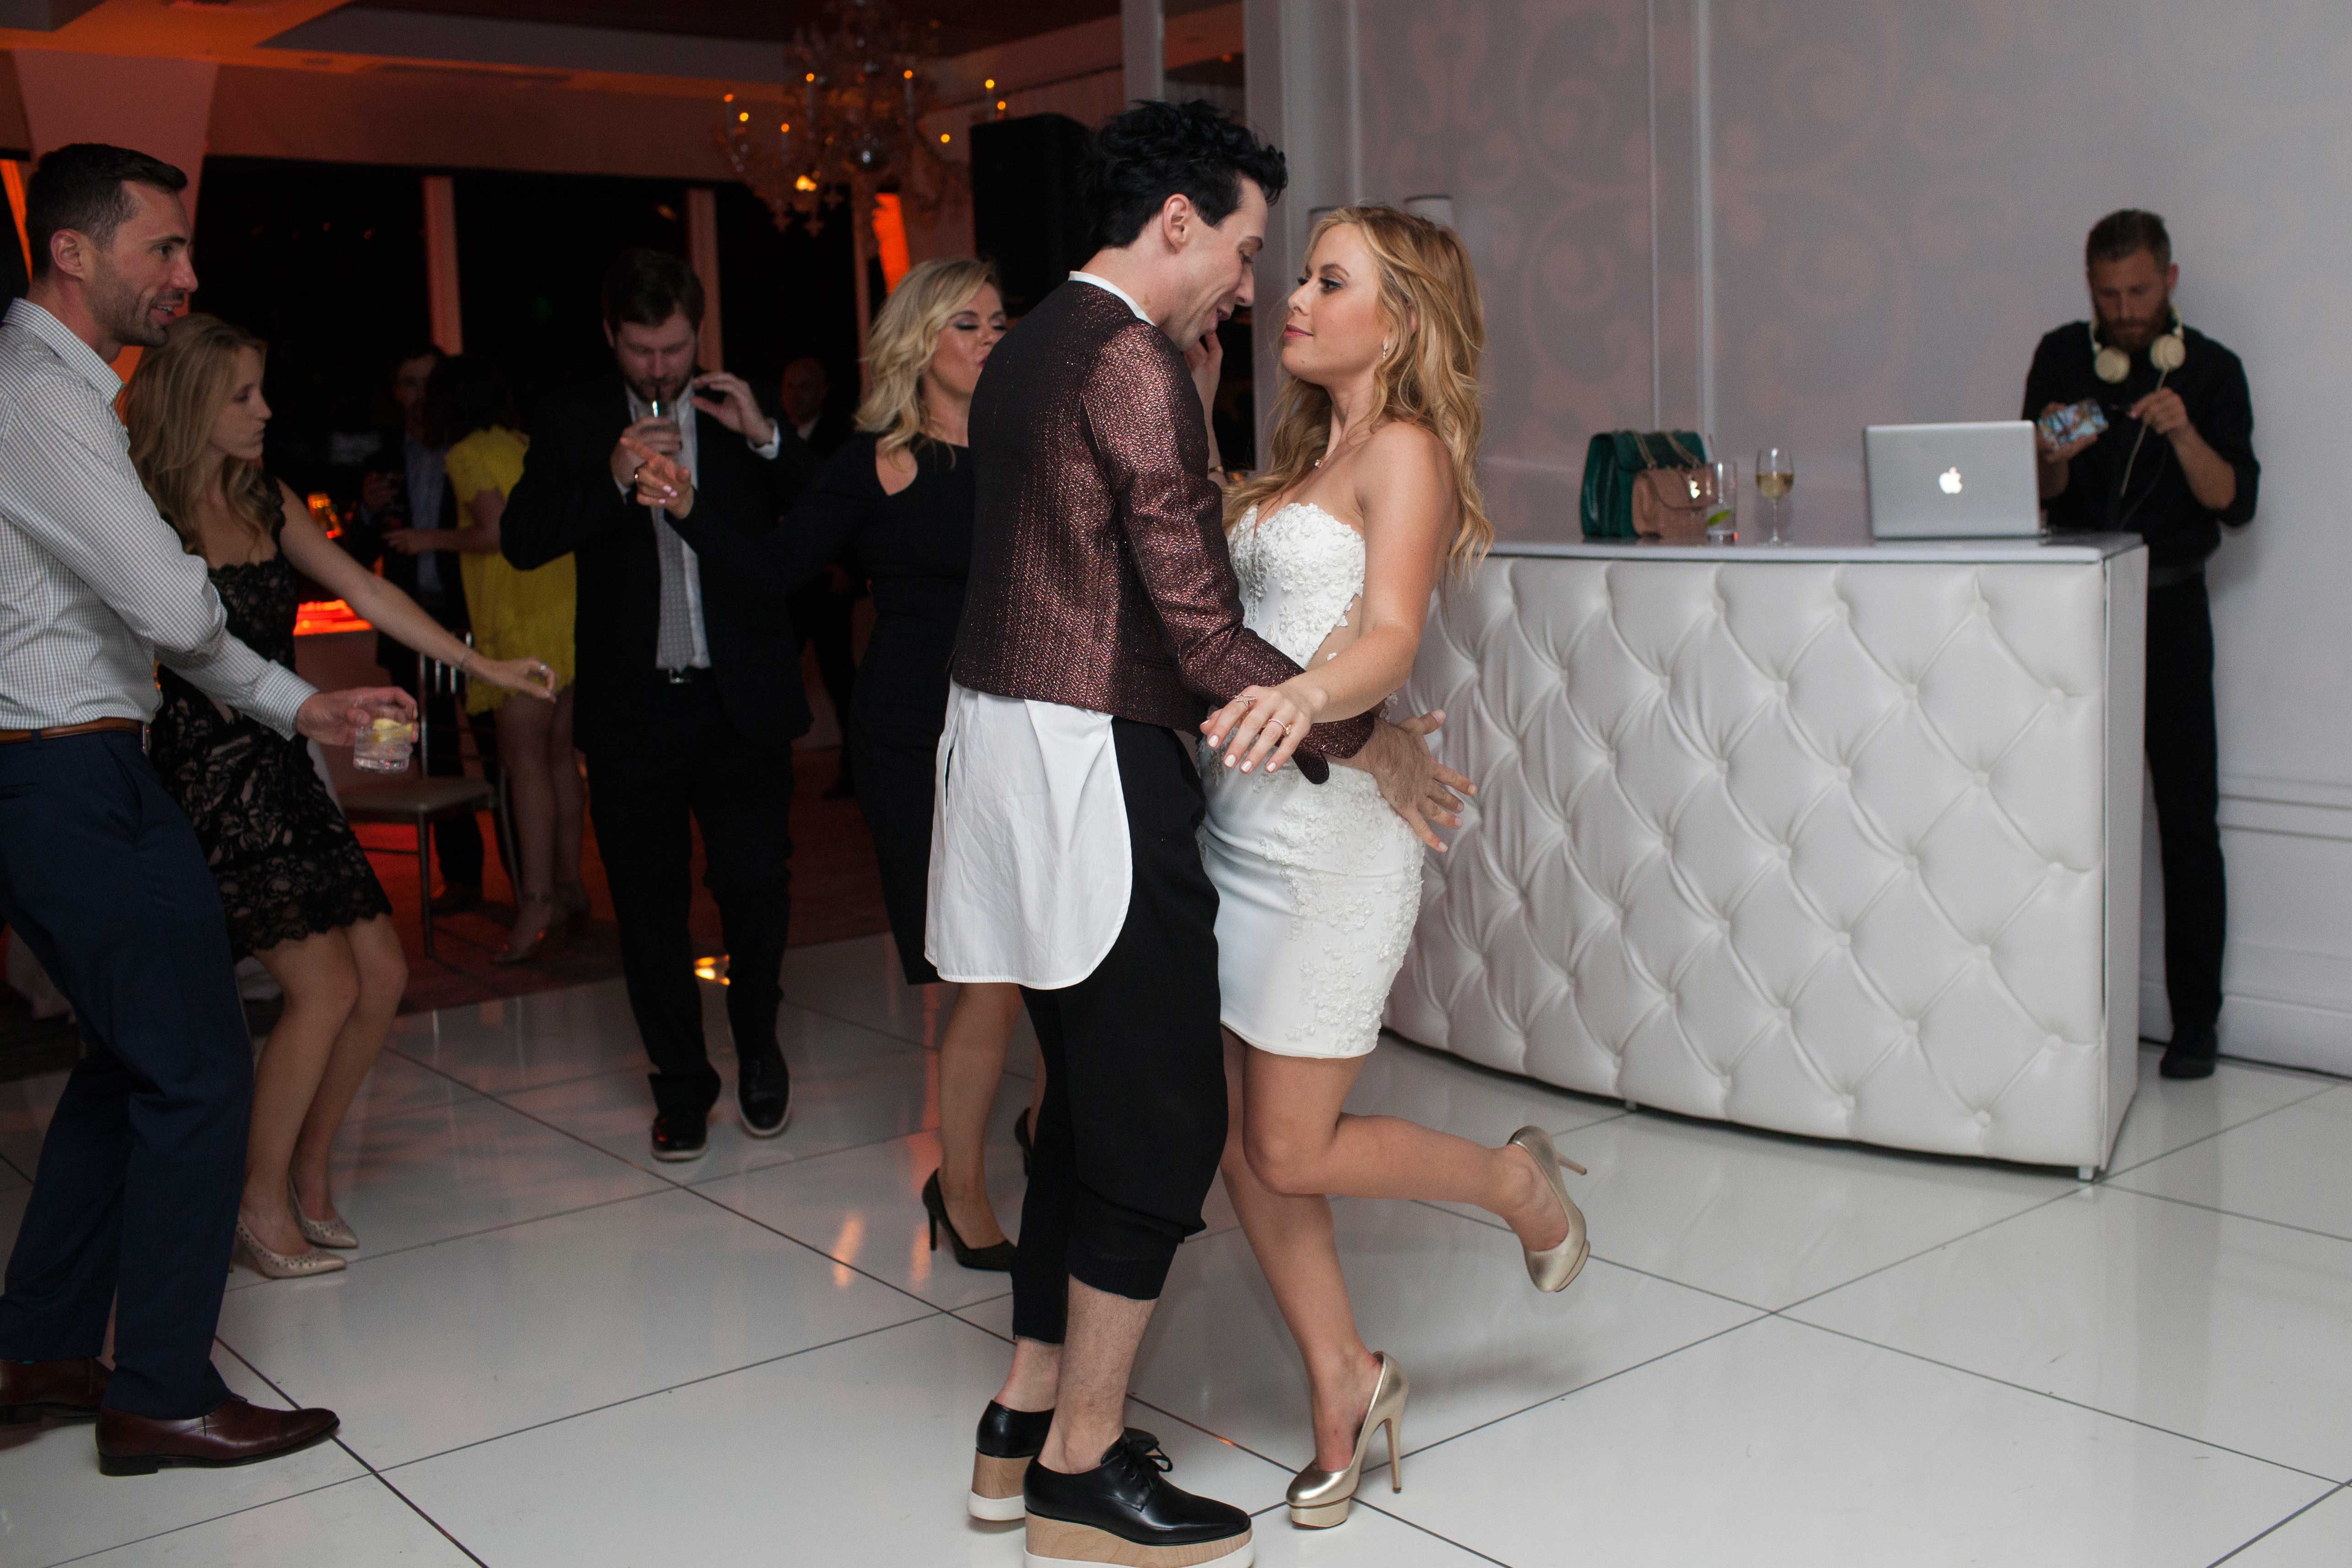 Olympic gold medalist Tara Lipinski's engagement party space dancing with Johnny Weir Mr C Beverly Hills May 2016 fiance Todd Kapostasy Mindy Weiss wedding planner